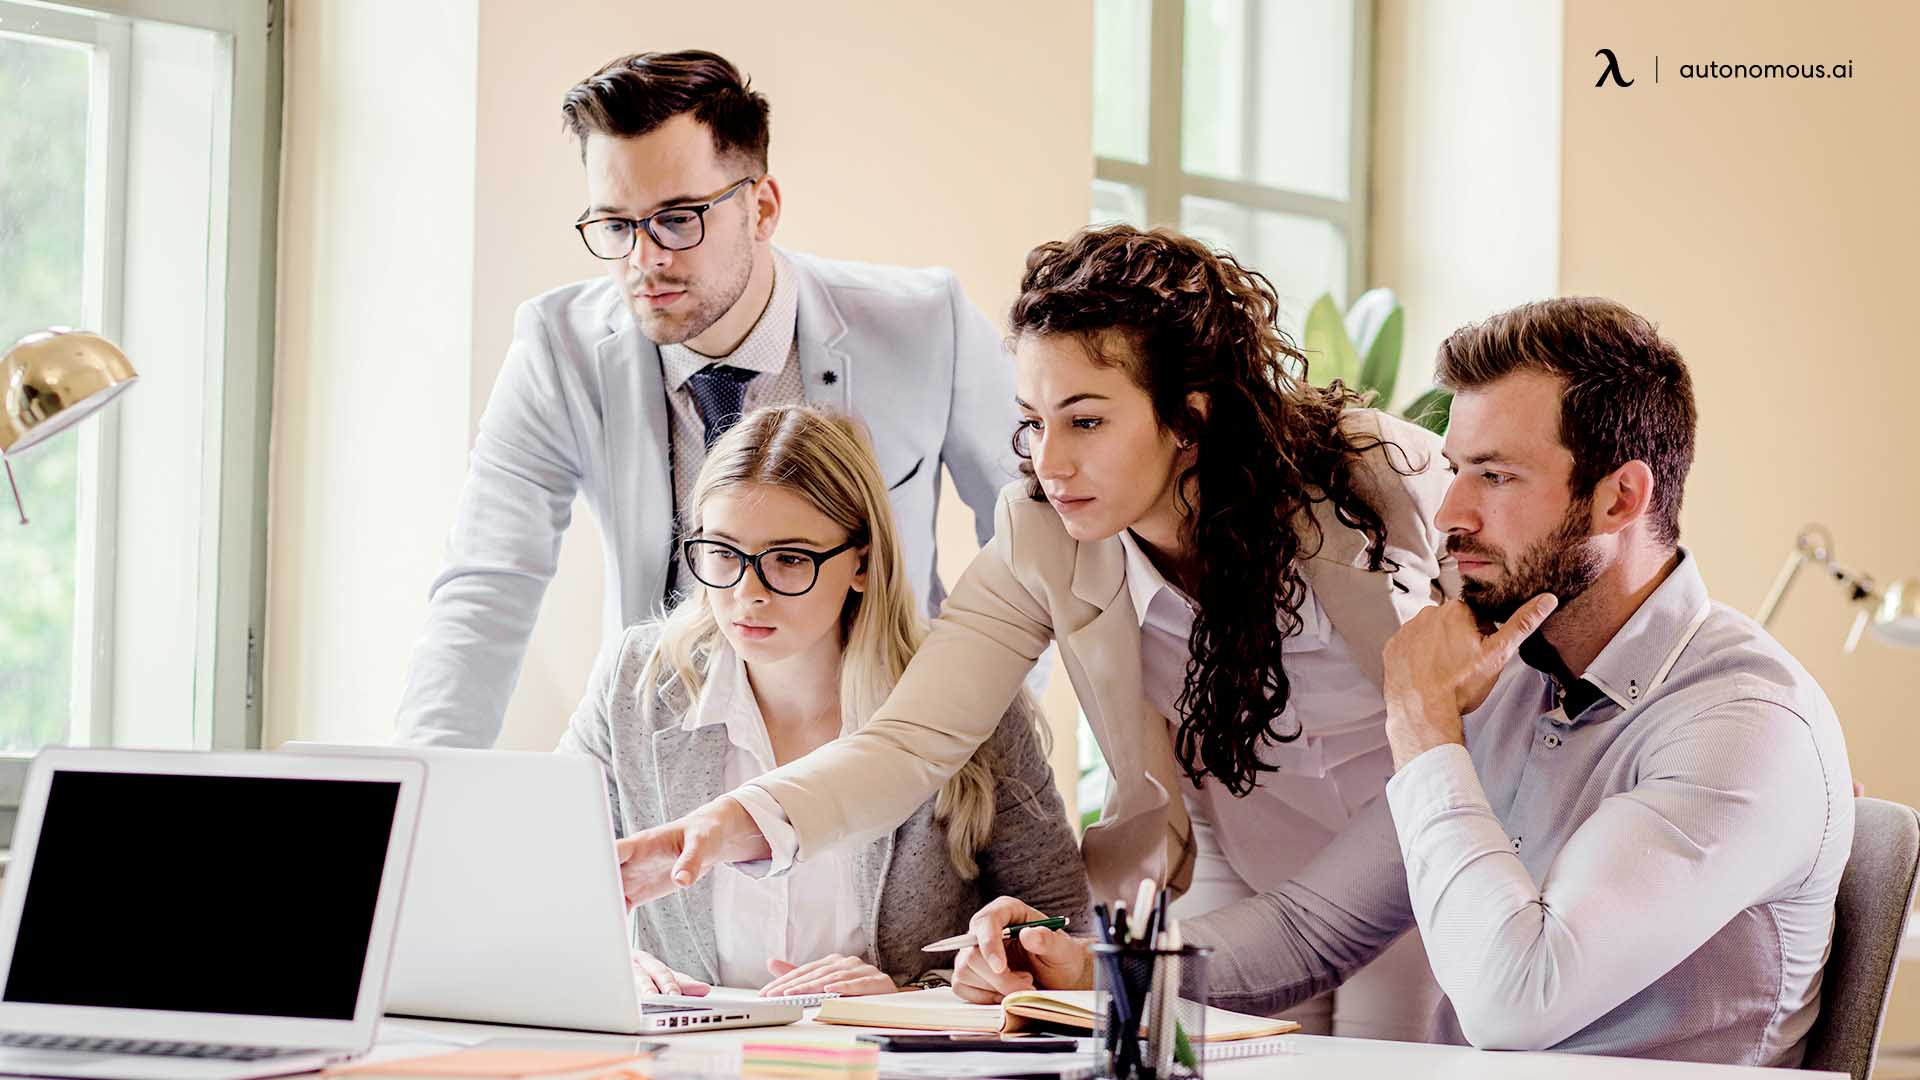 Have you ever delegated tasks to your team?